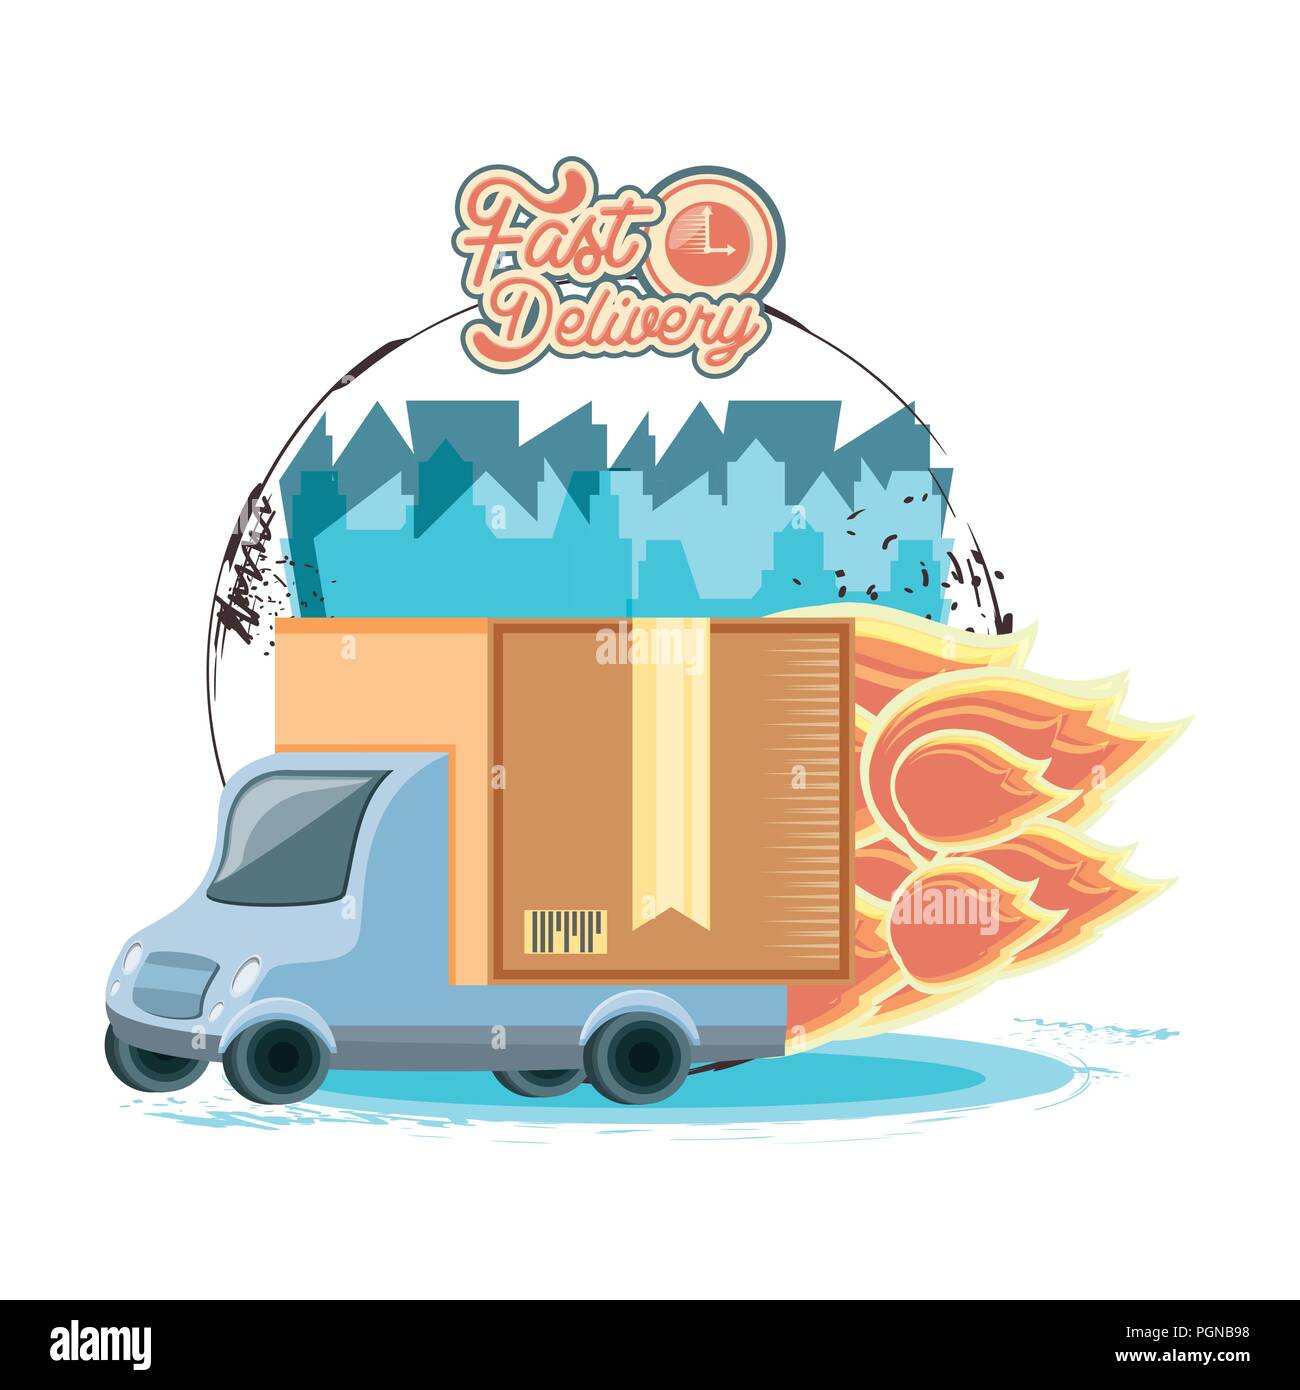 fast delivery service with truck vector illustration design - Stock Image